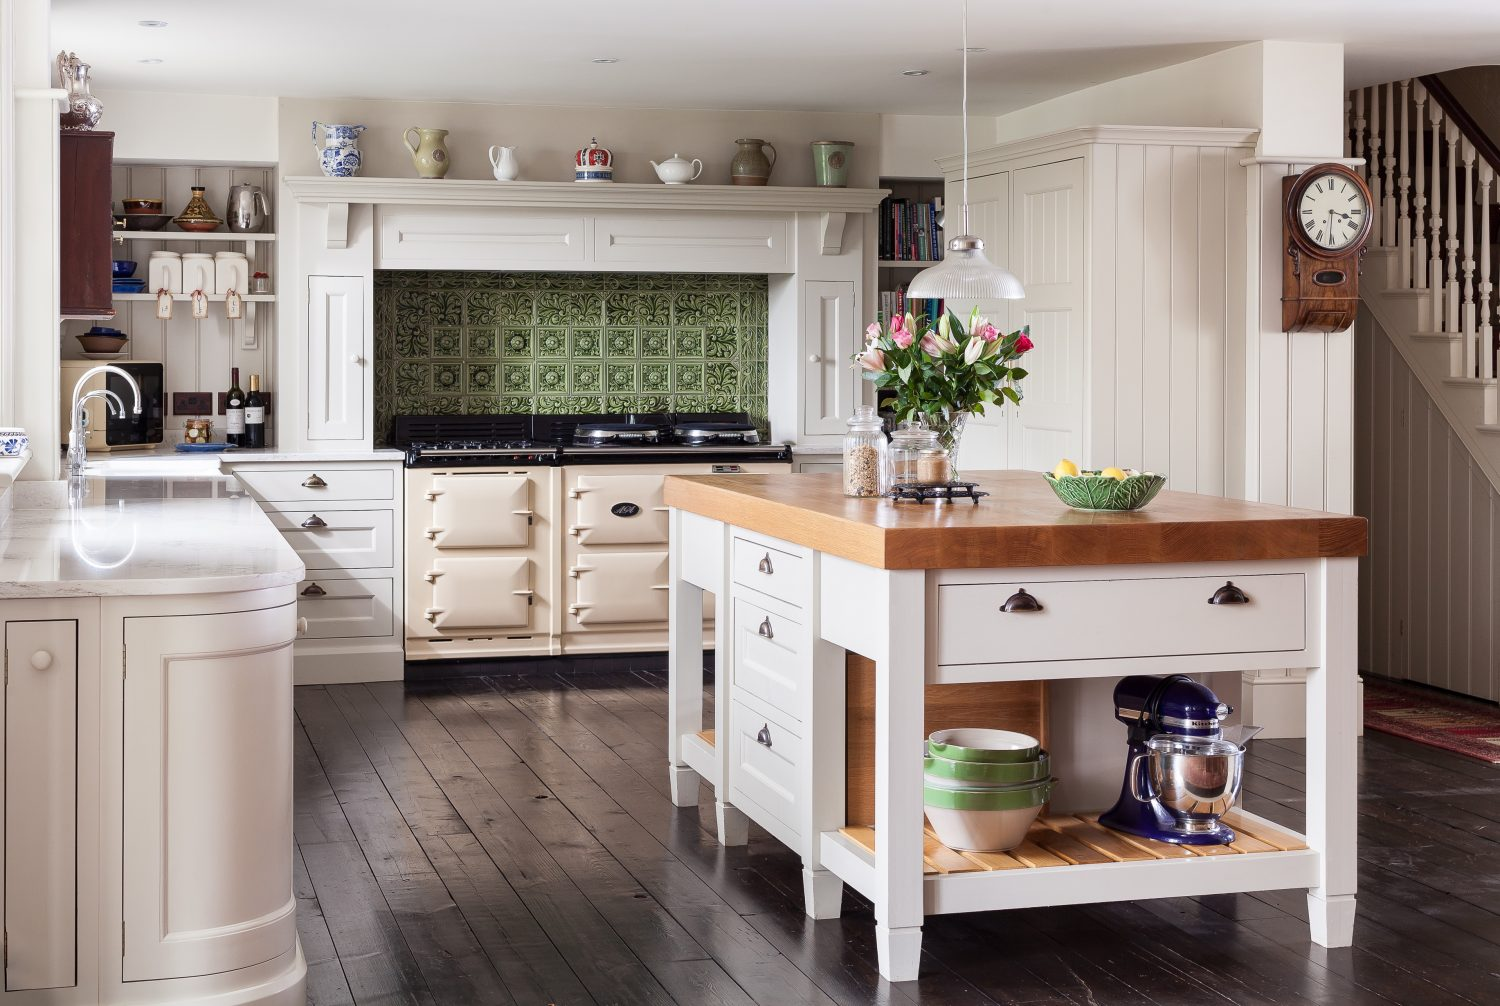 Jones Britain Victorian Hand Painted kitchen, with oak cupboard carcases from £30,000 0800 8600435 jonesbritain.co.uk